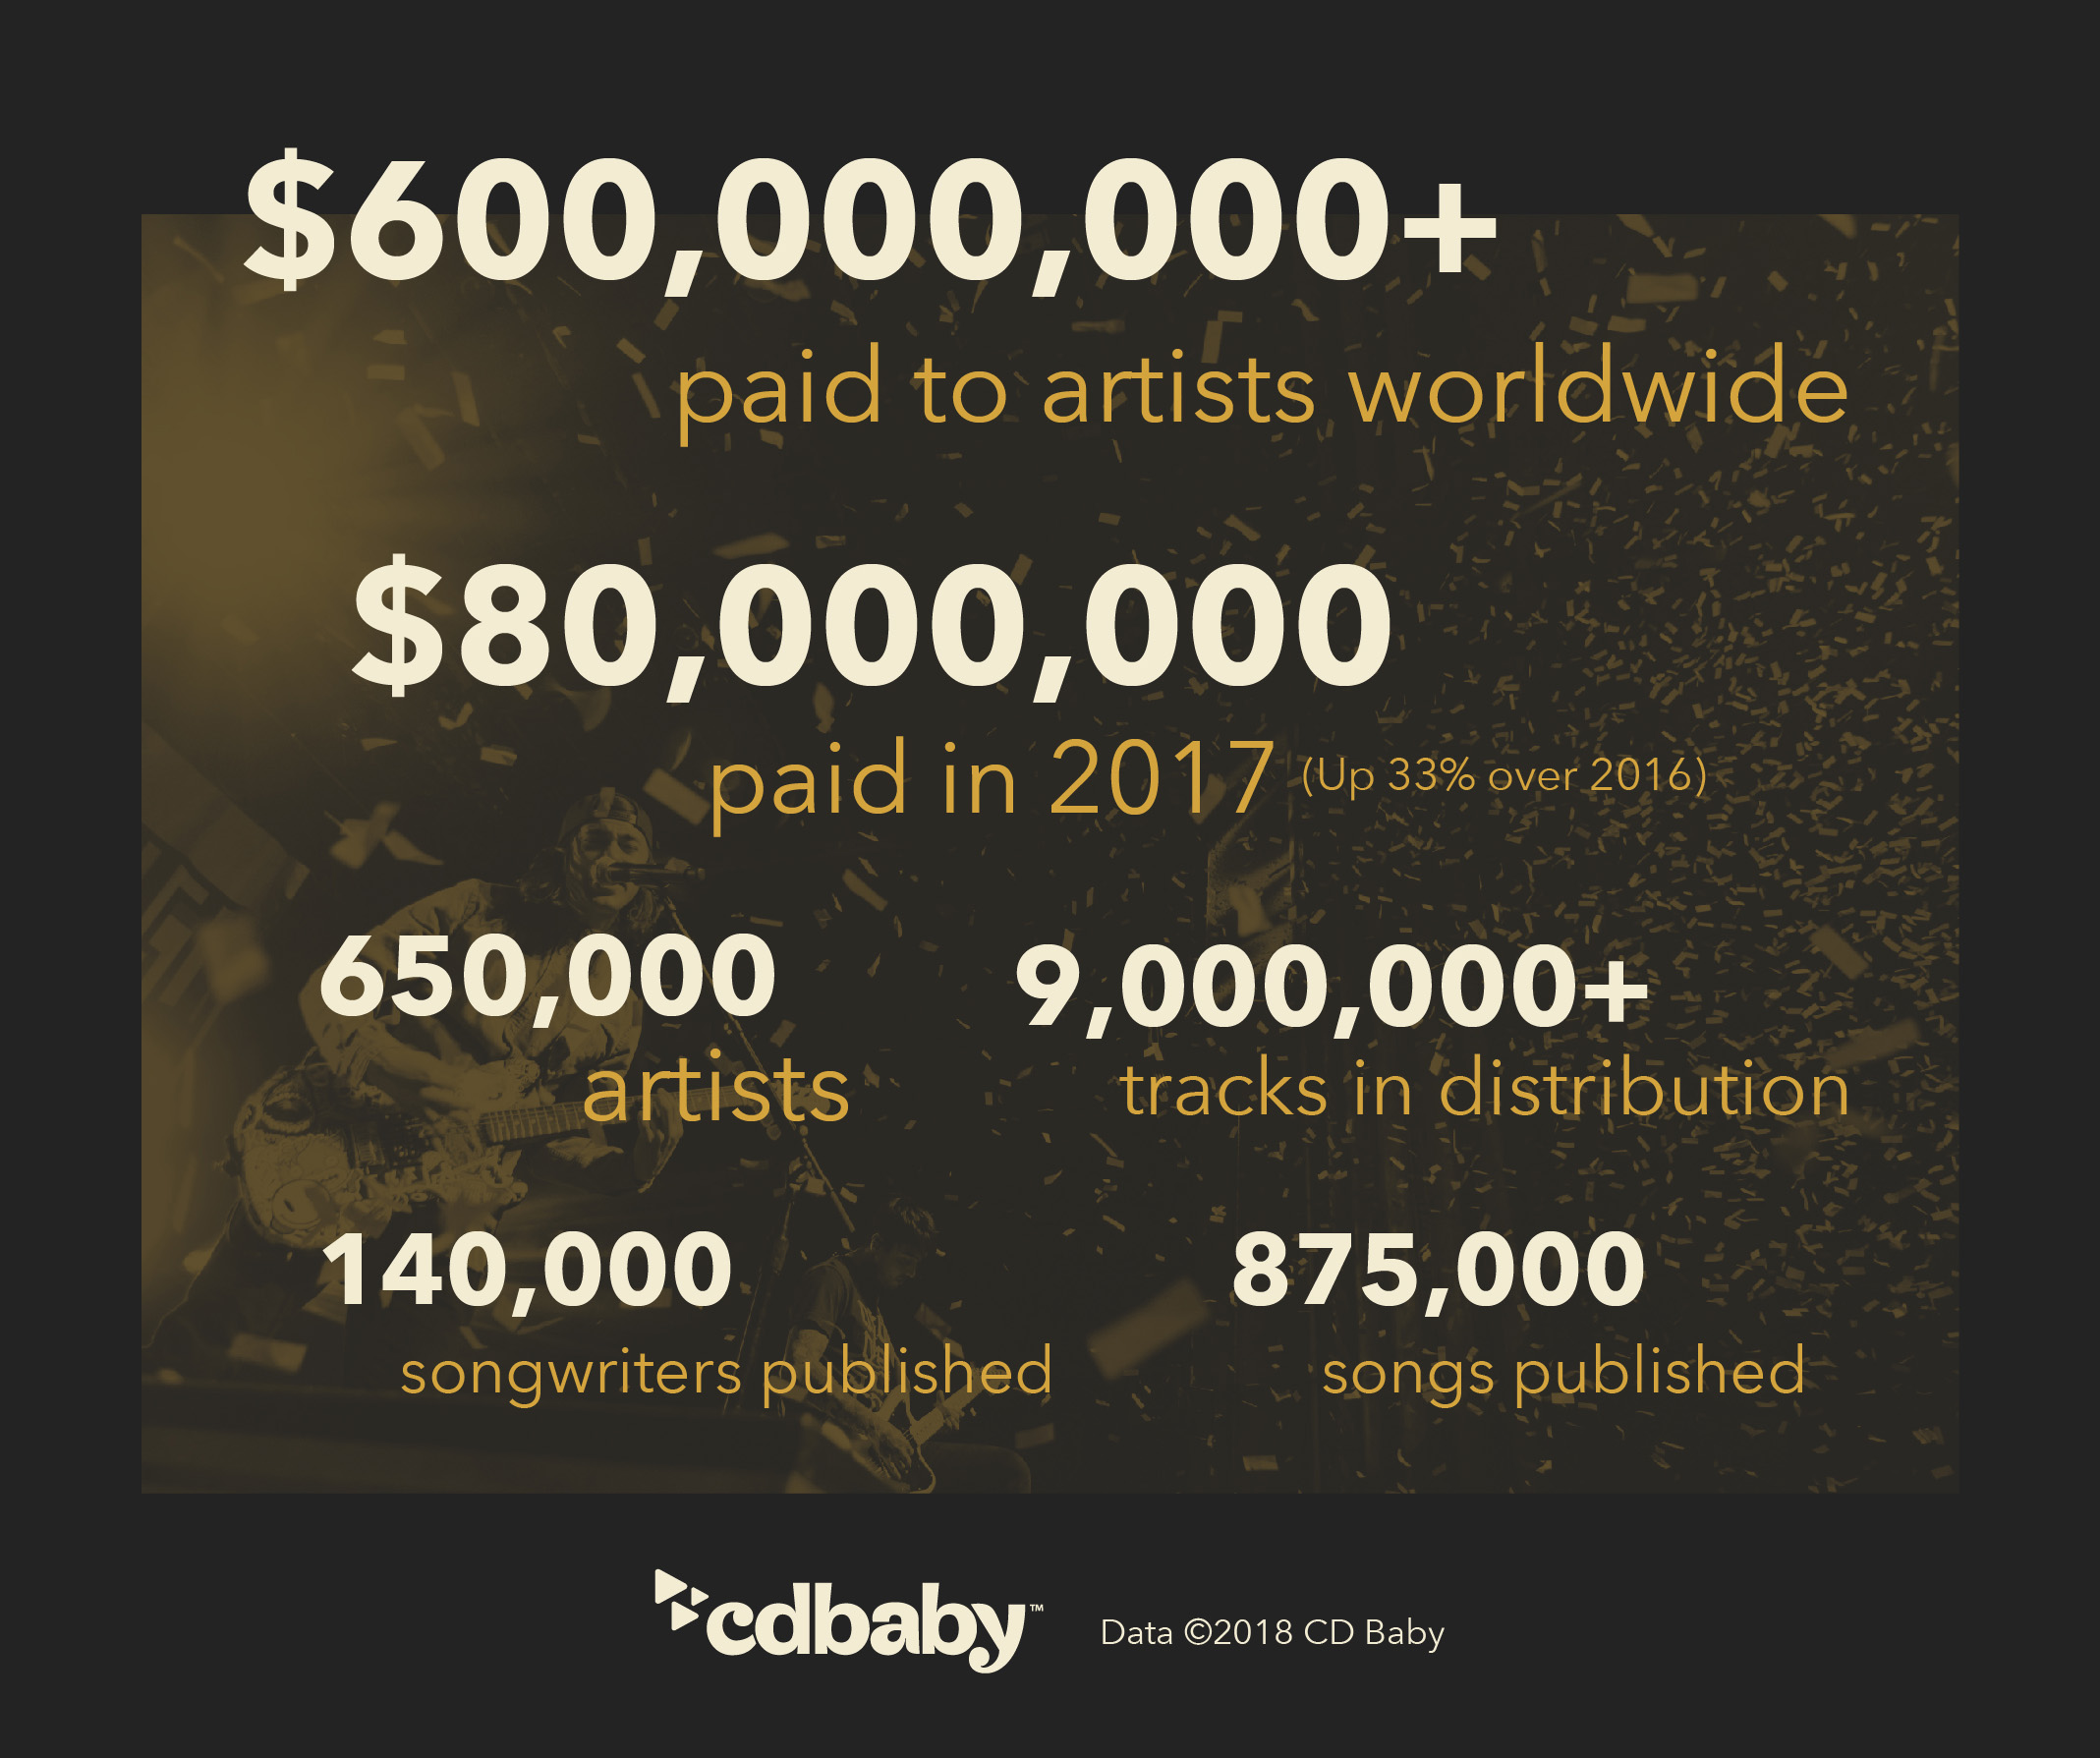 20 years of CD Baby distribution